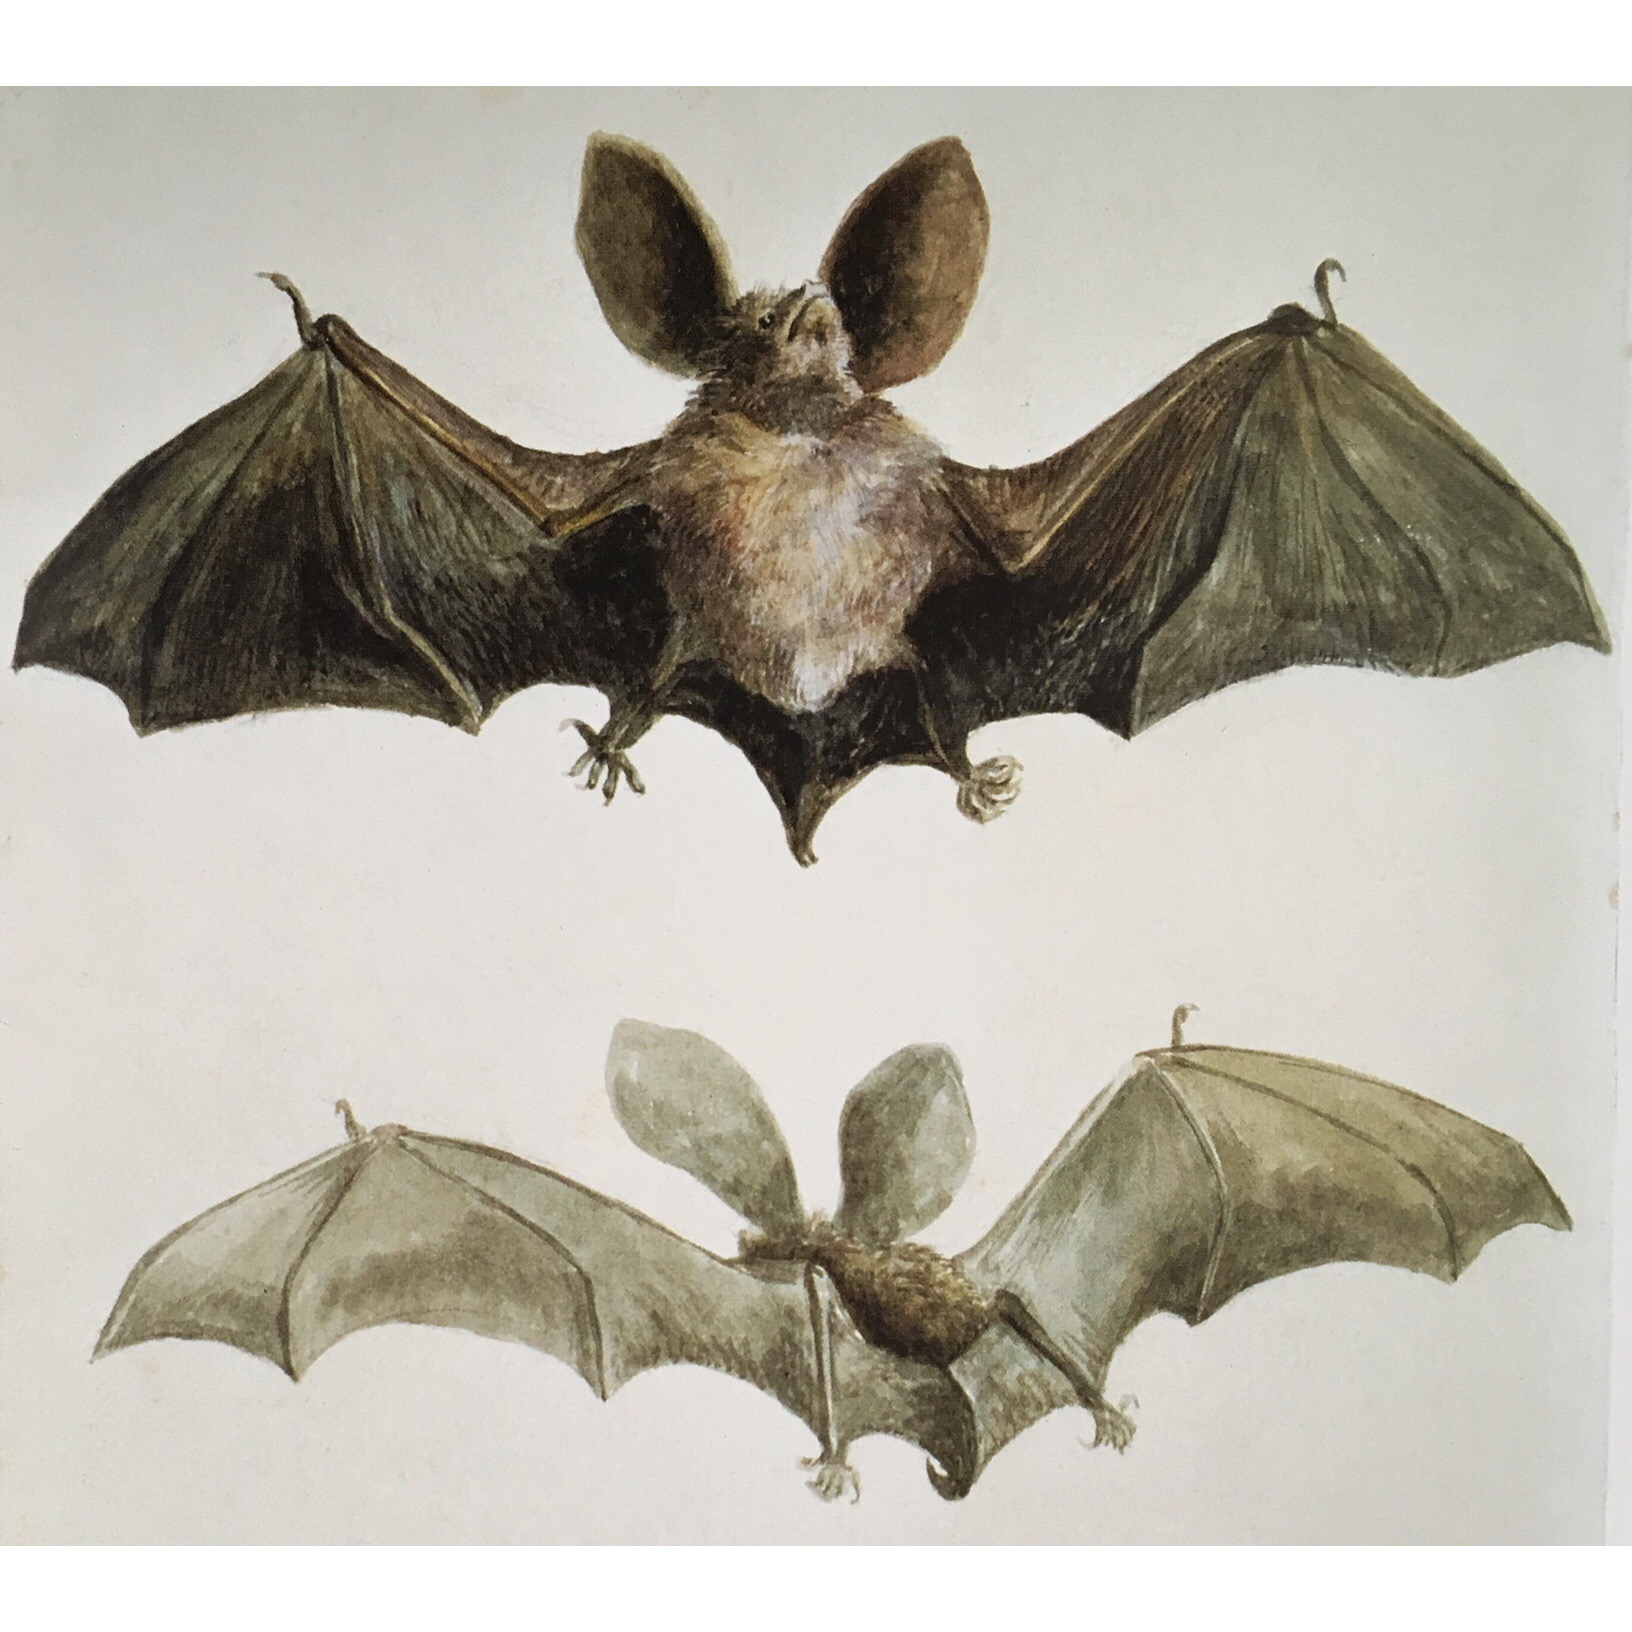 study of a bat, though this one isn't his, Beatrix looked after Bertram's pet bat while he was away at school